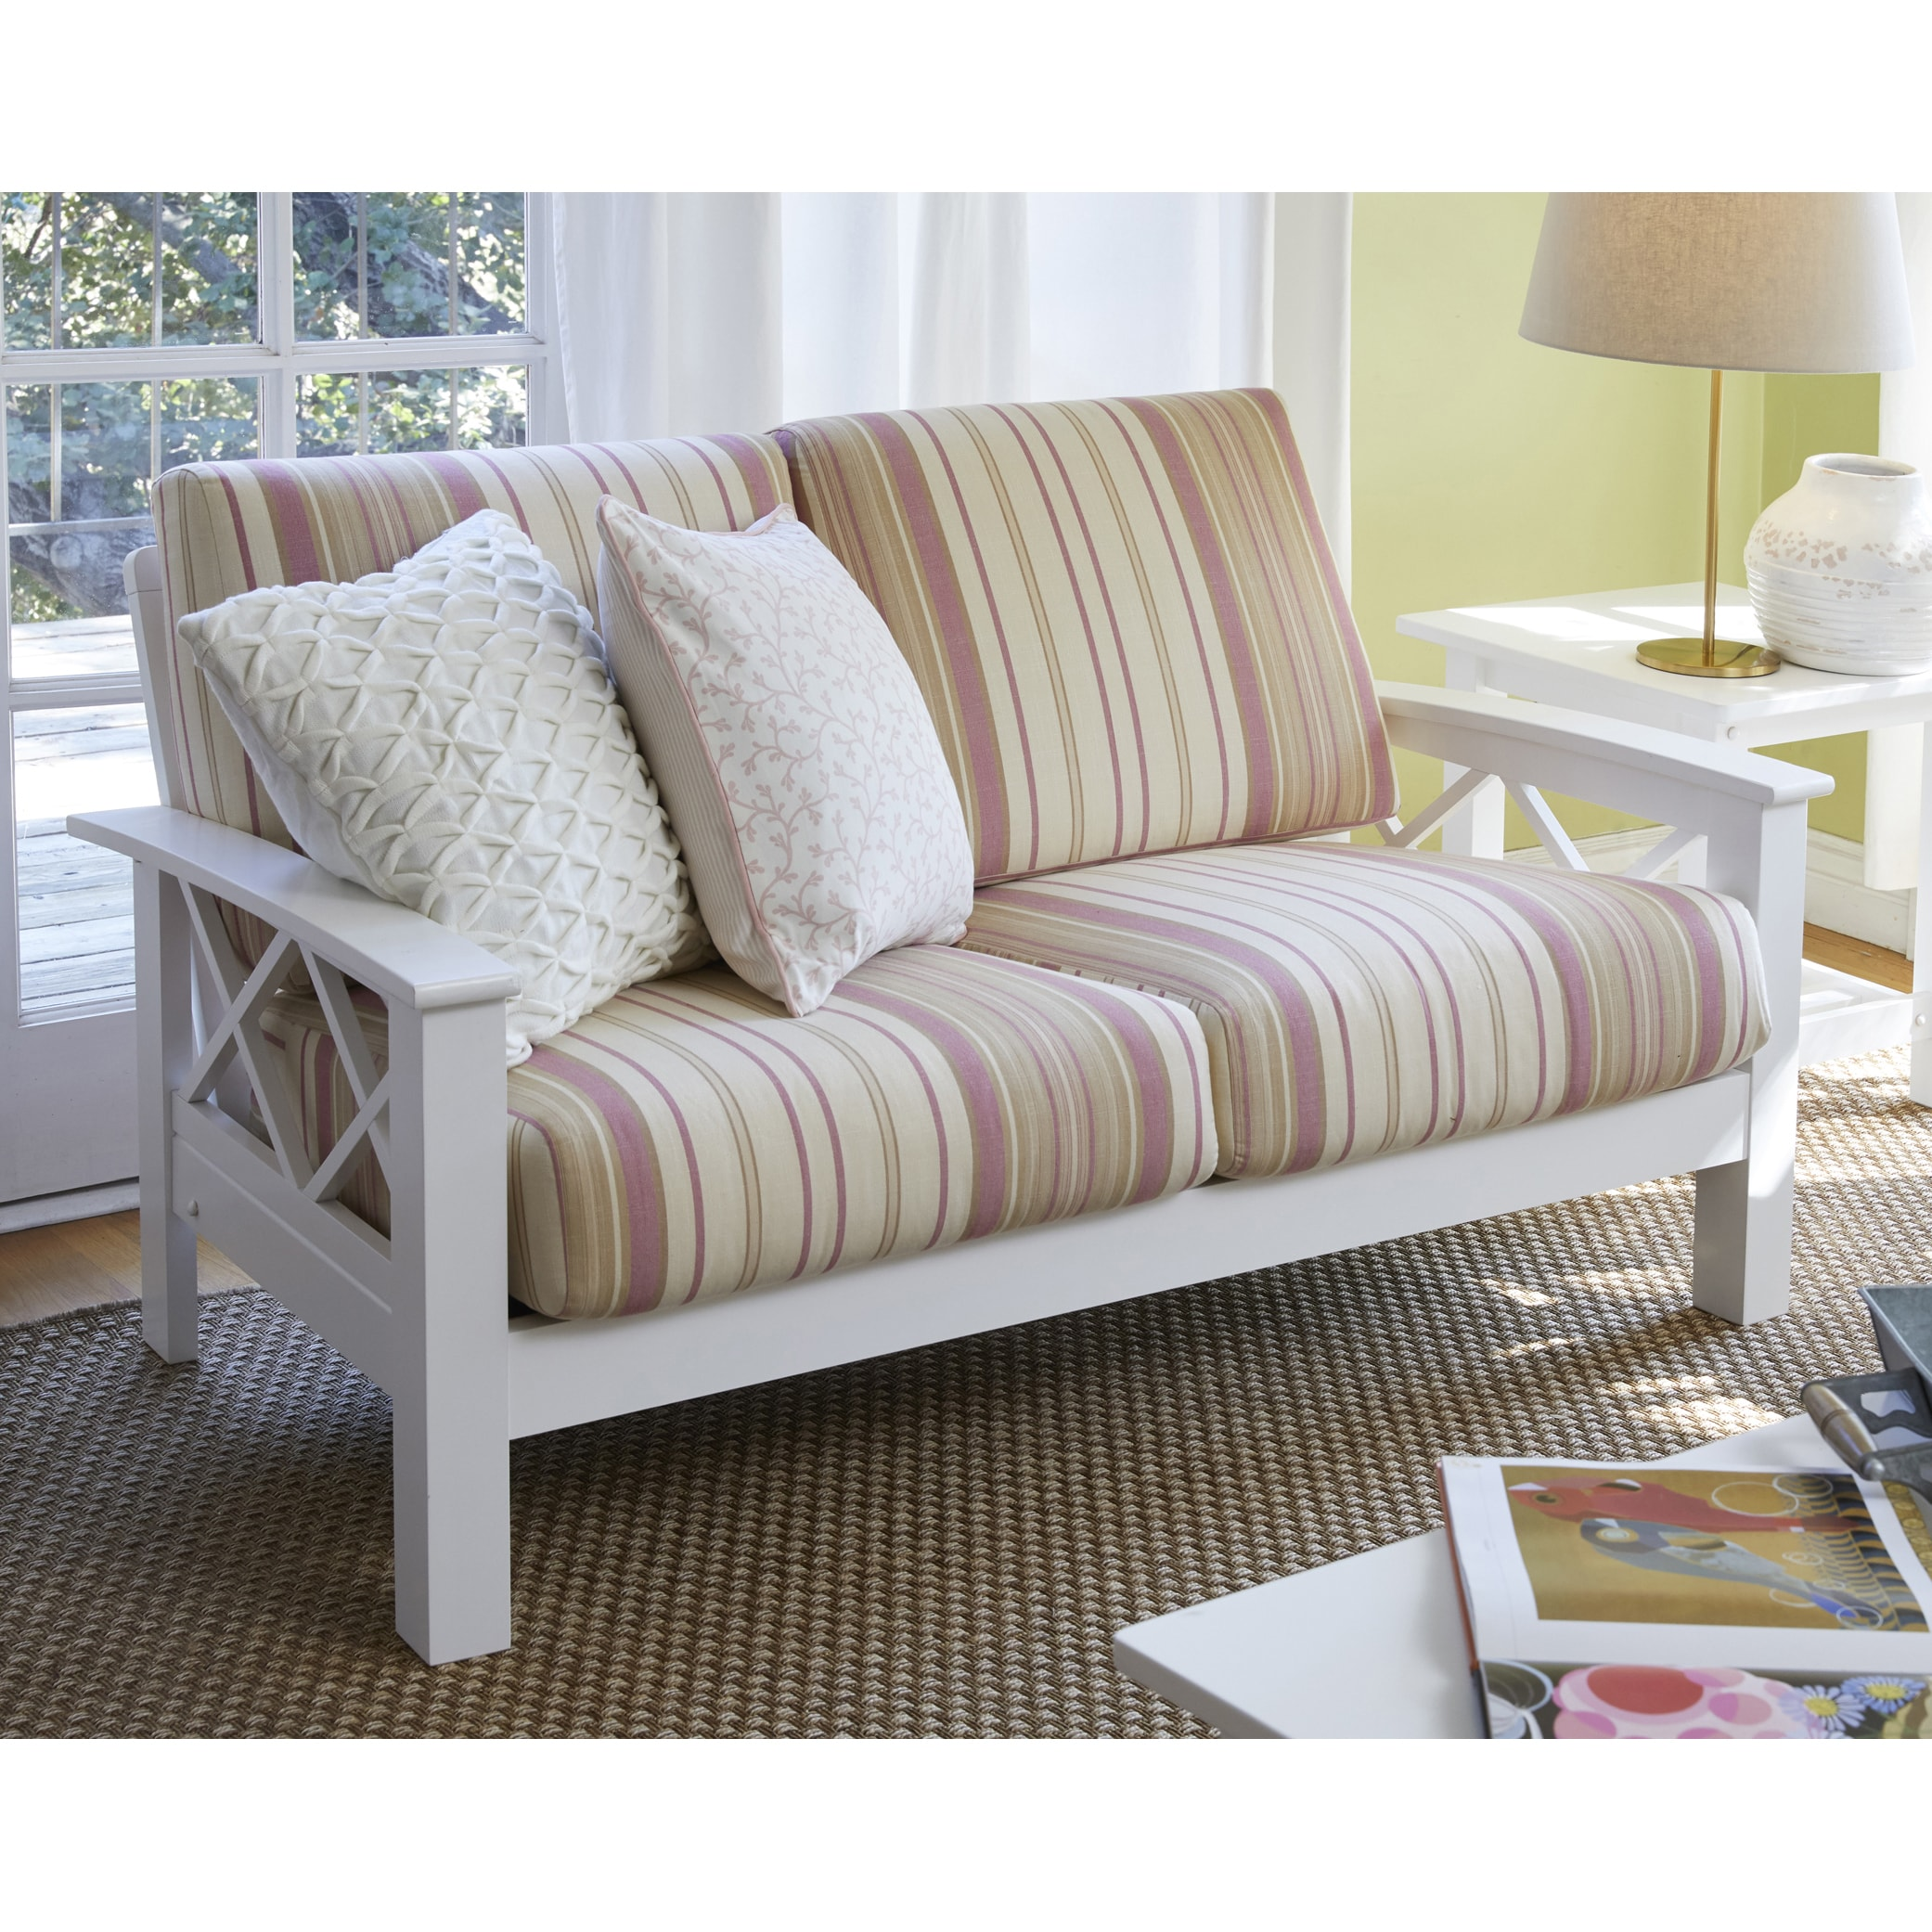 find loveseat and wood market daily world oldbrandnew copycatchic barrel frame crate upholstered kinley cavett vs